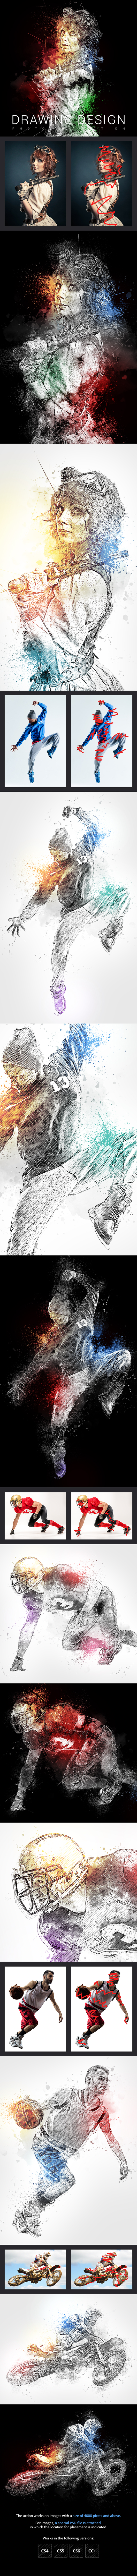 GraphicRiver Drawing Design Photoshop Action 20986902